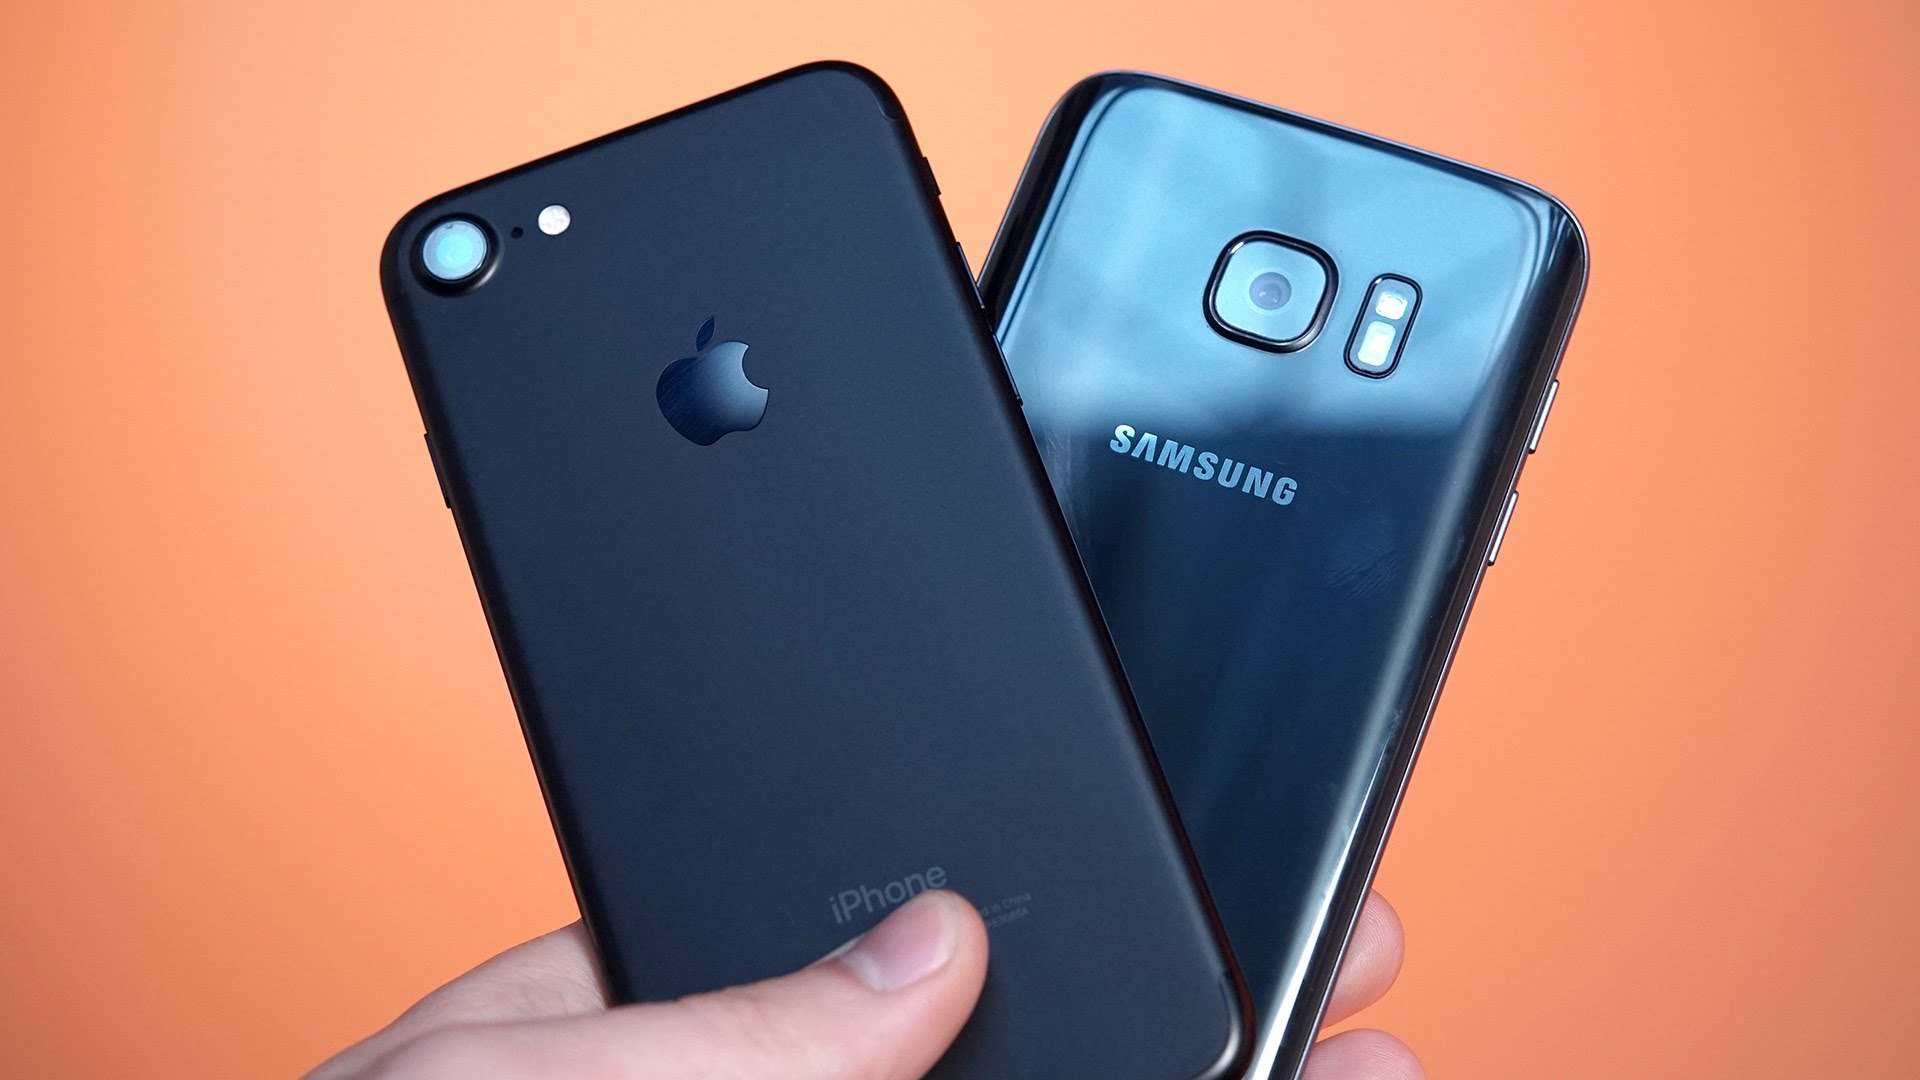 Why people prefer Samsung Galaxy S7 as compared to iPhone 7? find out the main difference